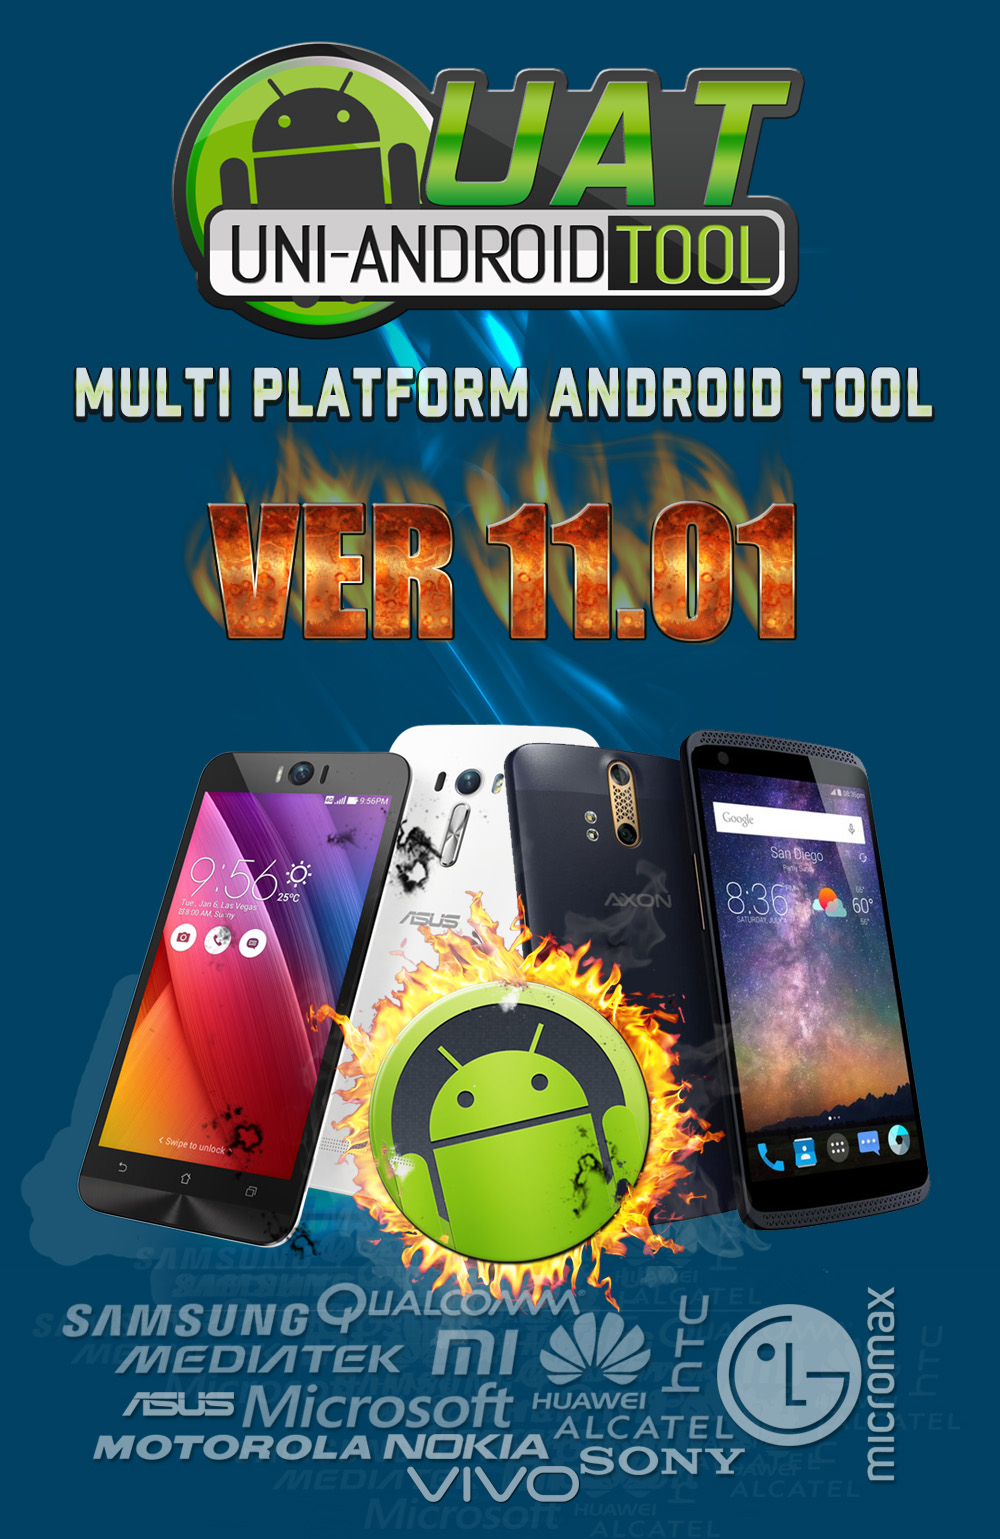 Uni-Android Tool [UAT] Version 11.01 Released [14/12/2017]